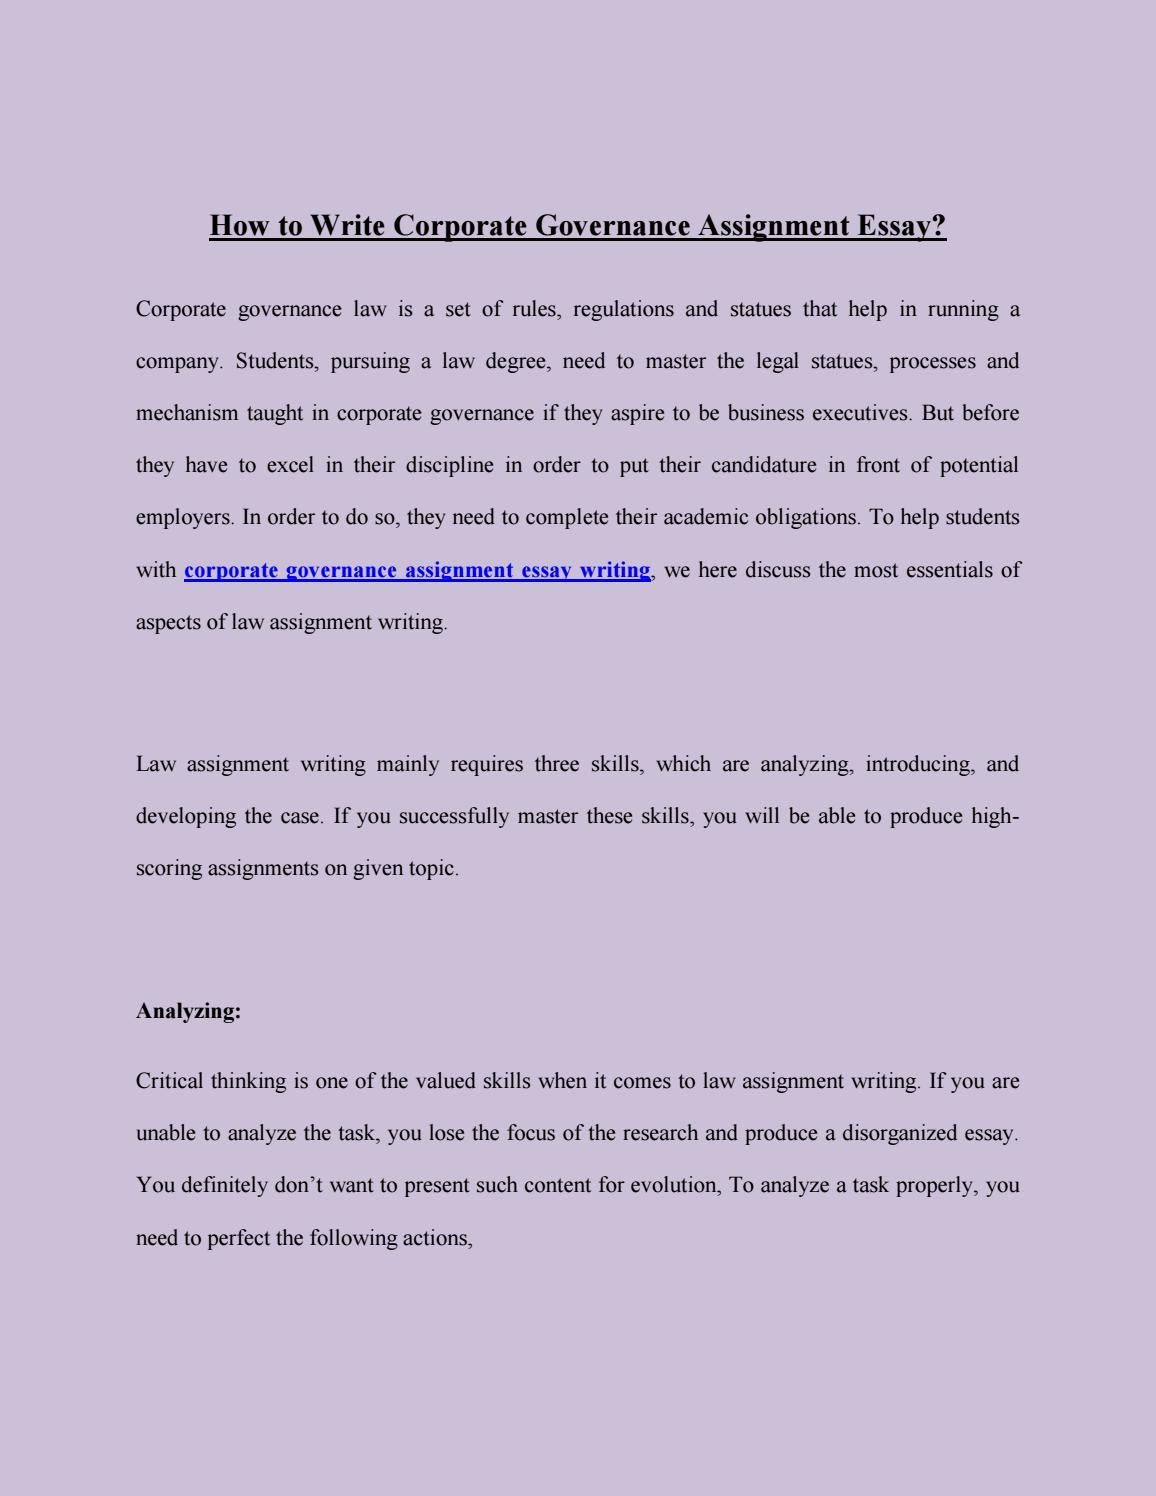 company law essay company essay essay company company essay plea  also how to write corporate governance assignment essay by ameeliabrown how towrite corporate governance assignment essay